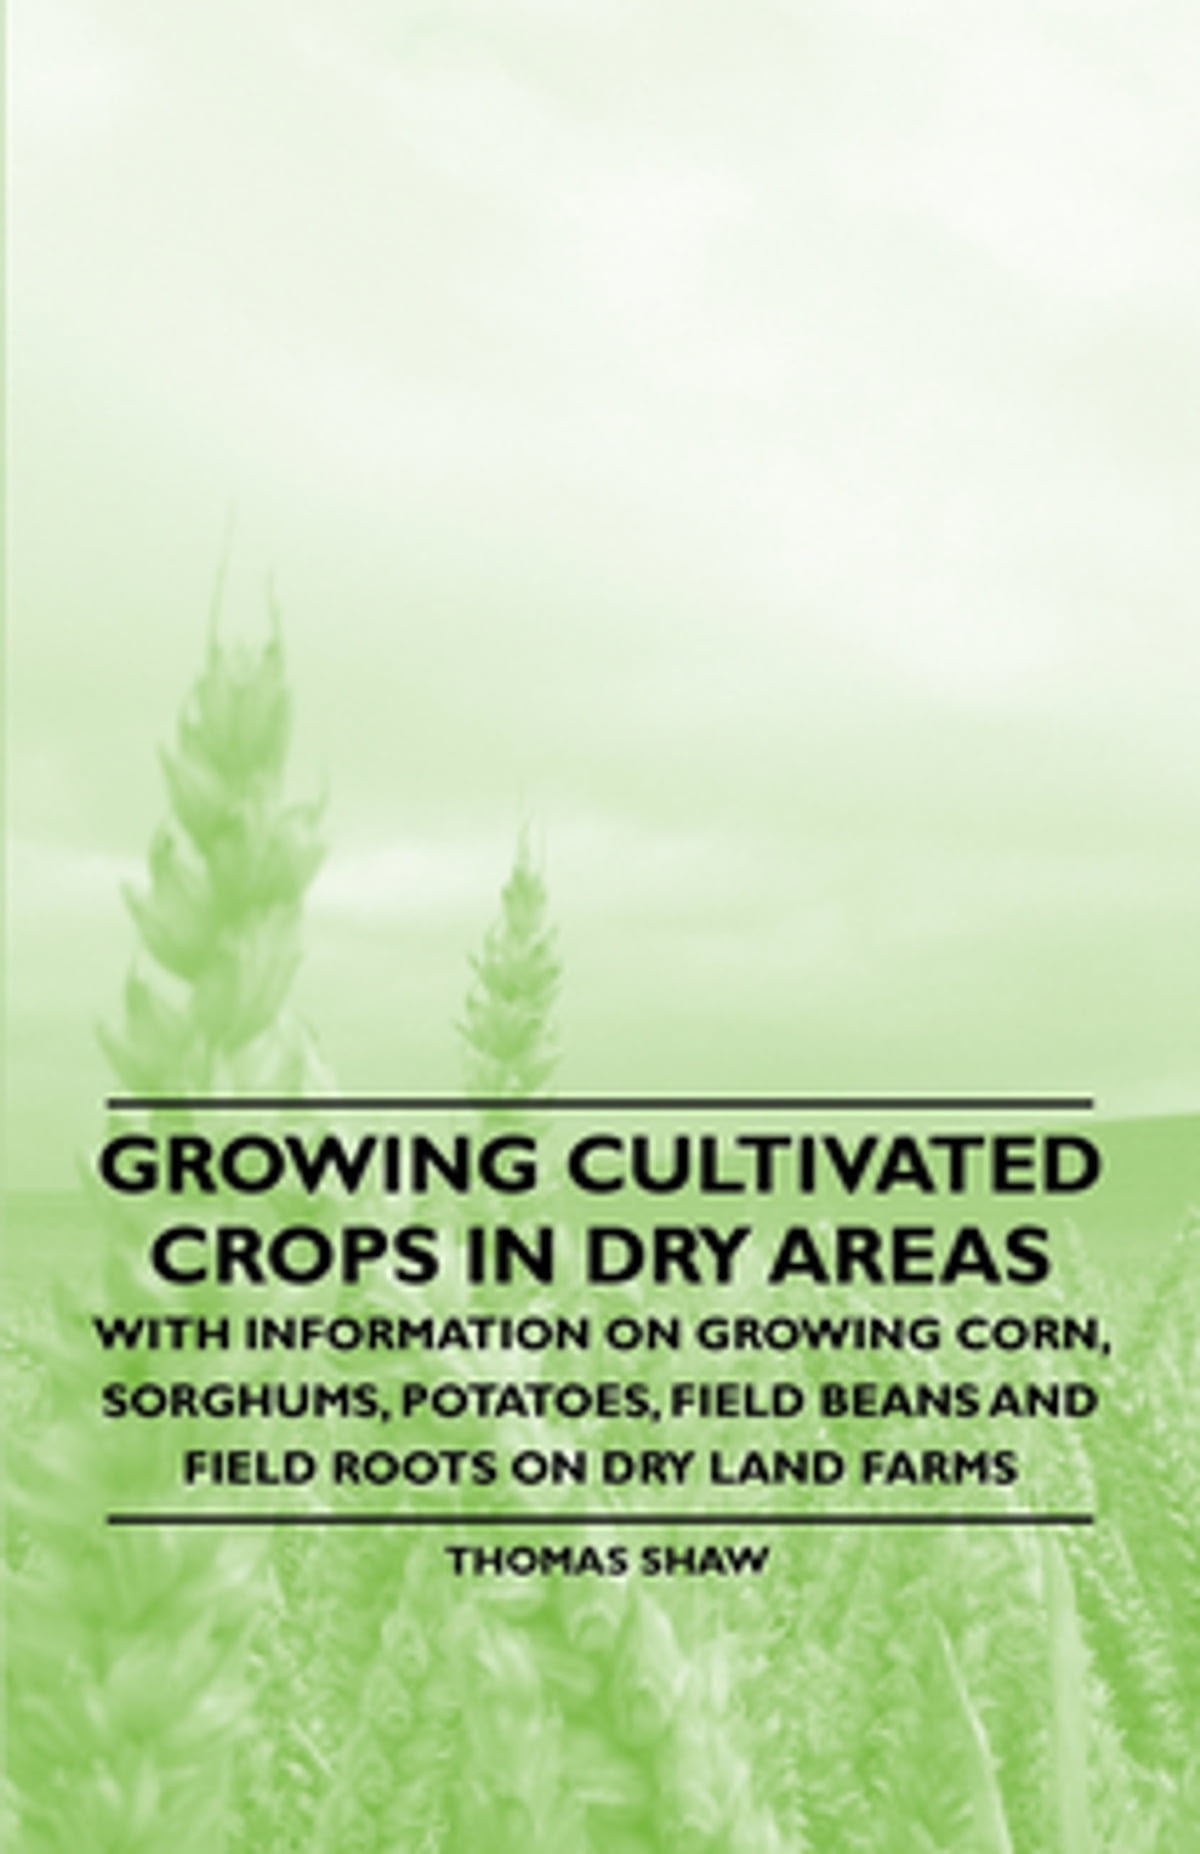 Information On Growing Okra And Harvesting Okra: Growing Cultivated Crops In Dry Areas